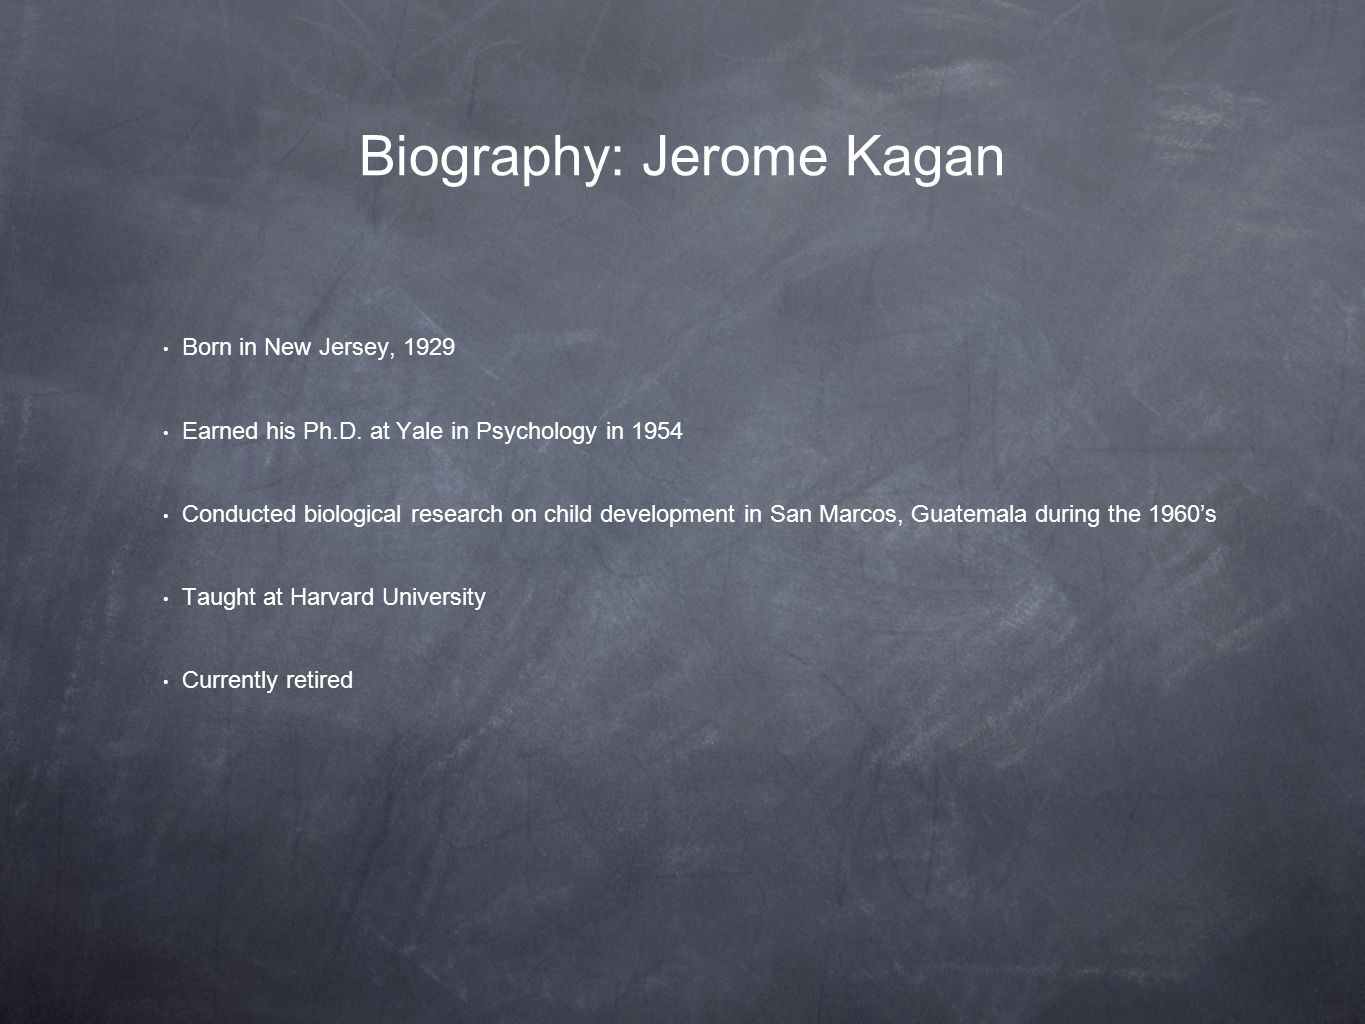 Biography: Jerome Kagan